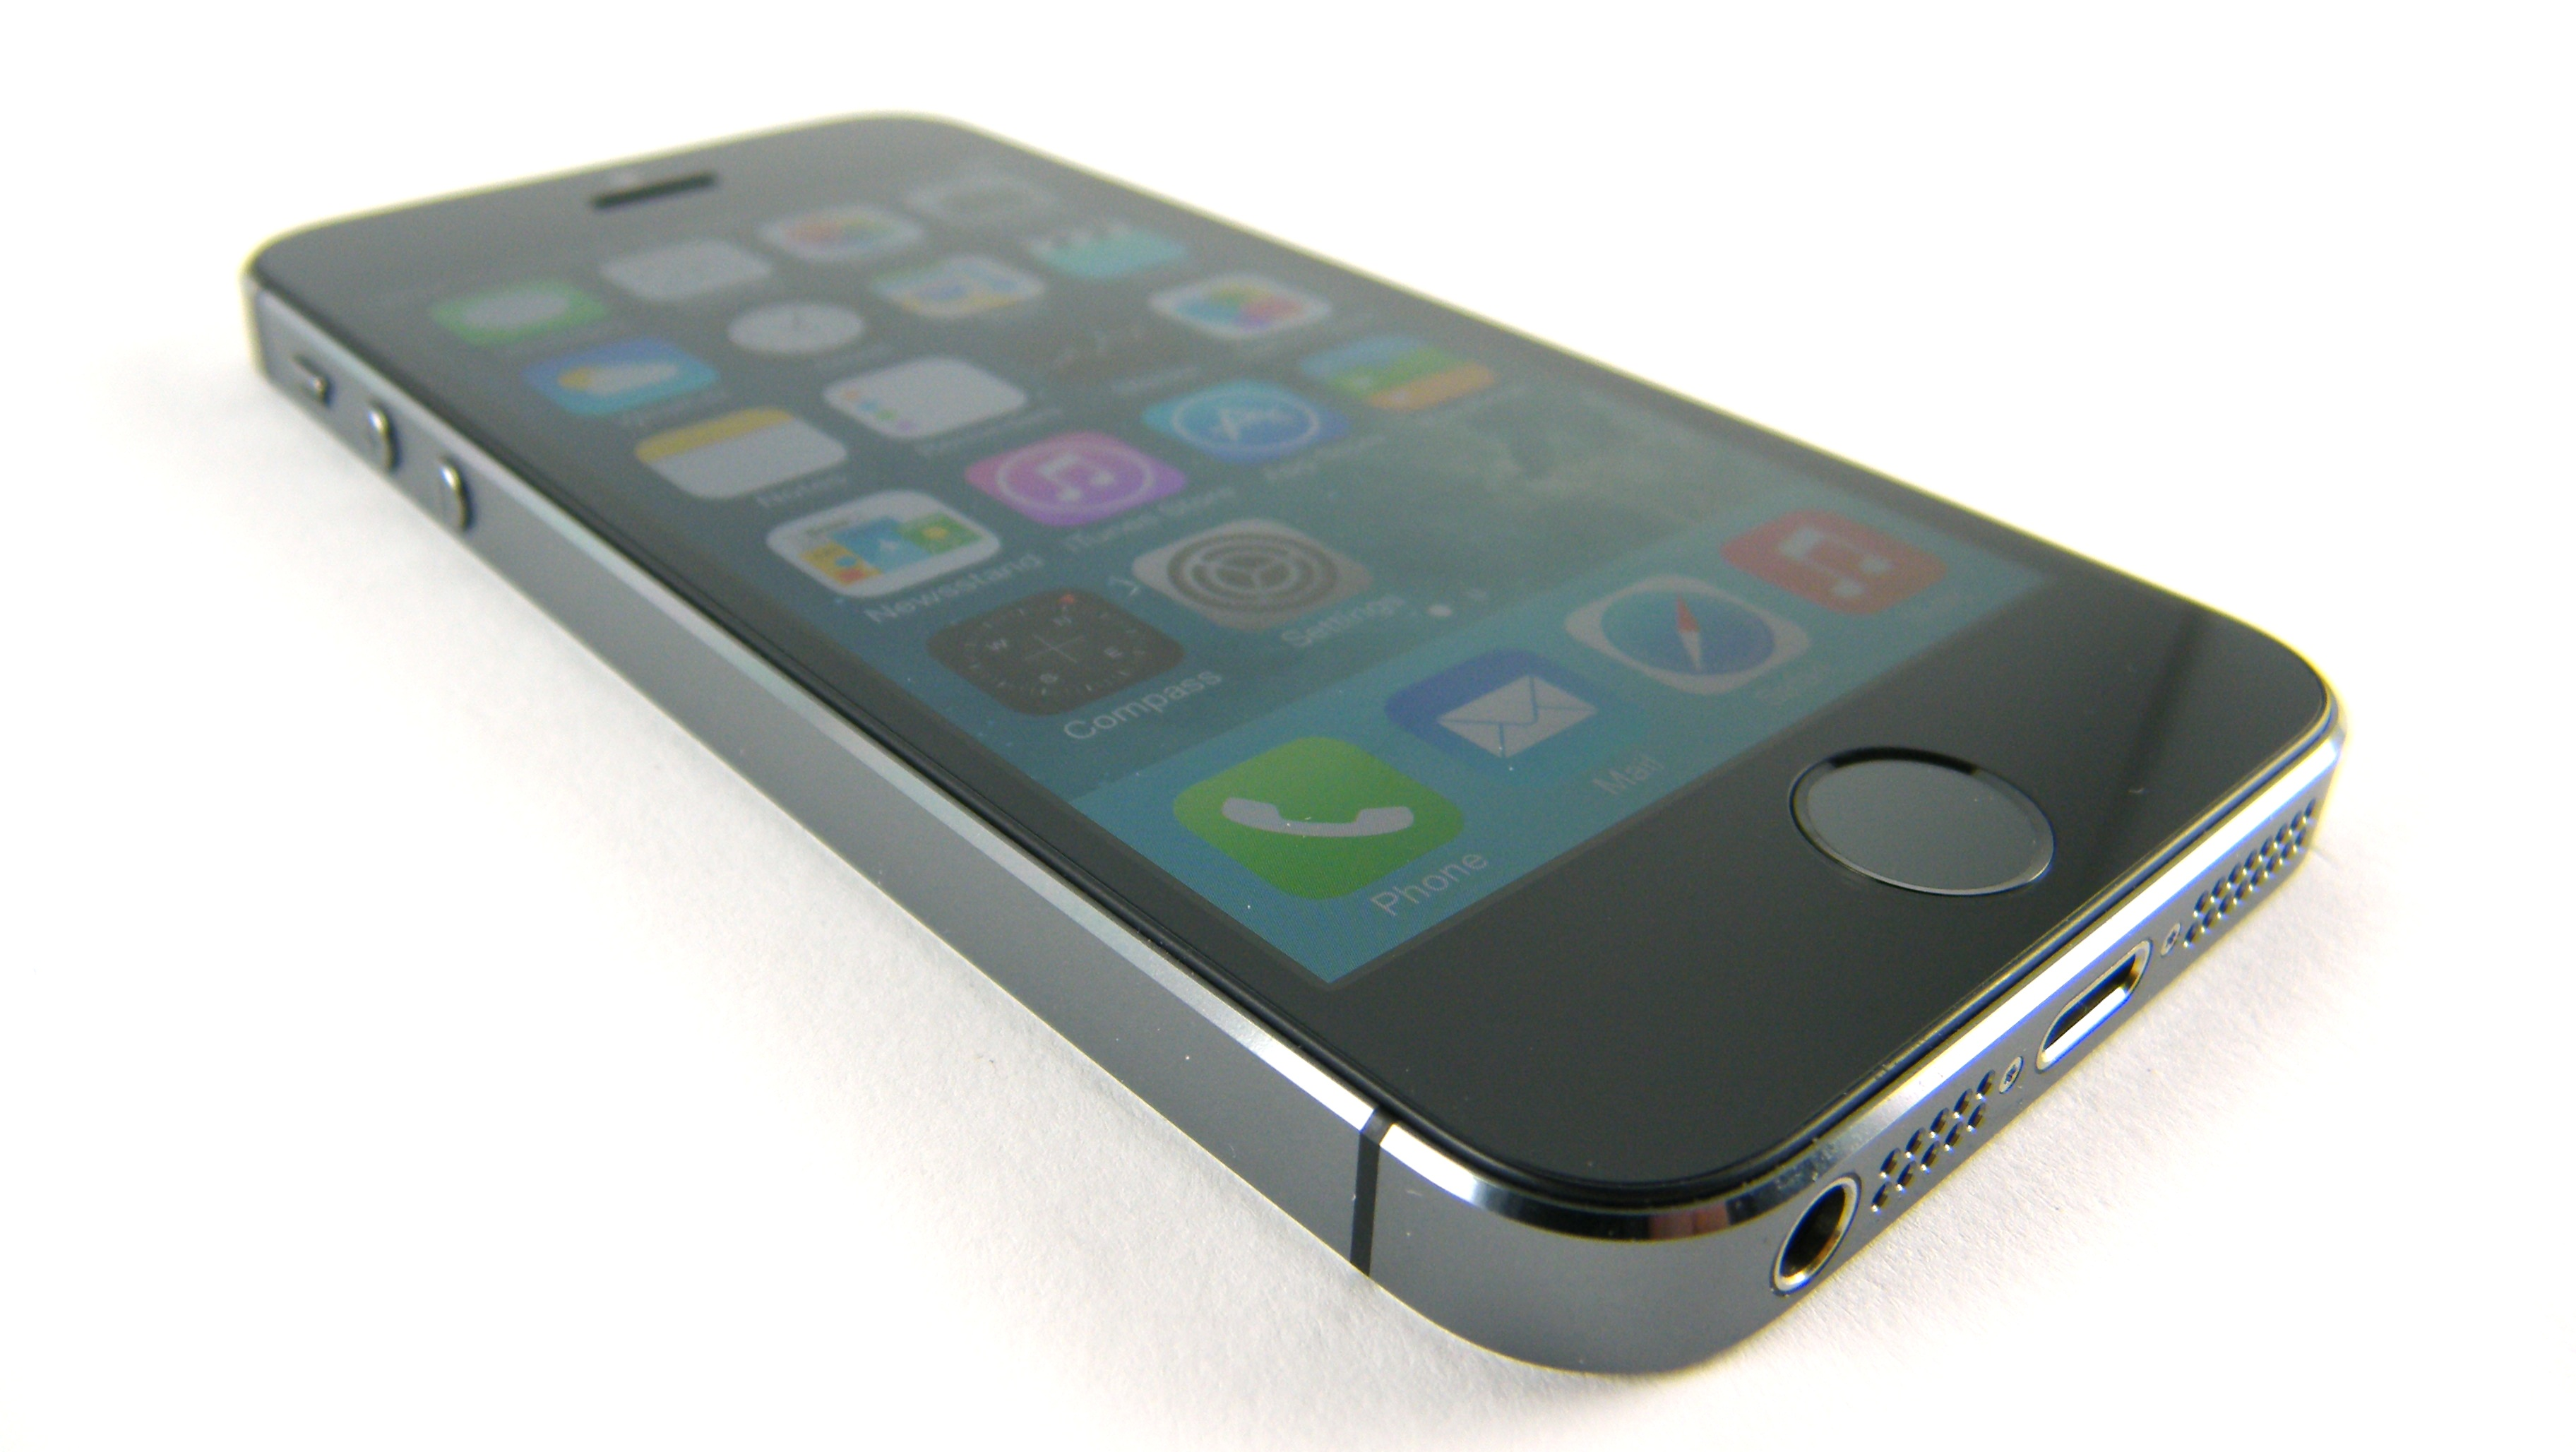 iPhones 5S review